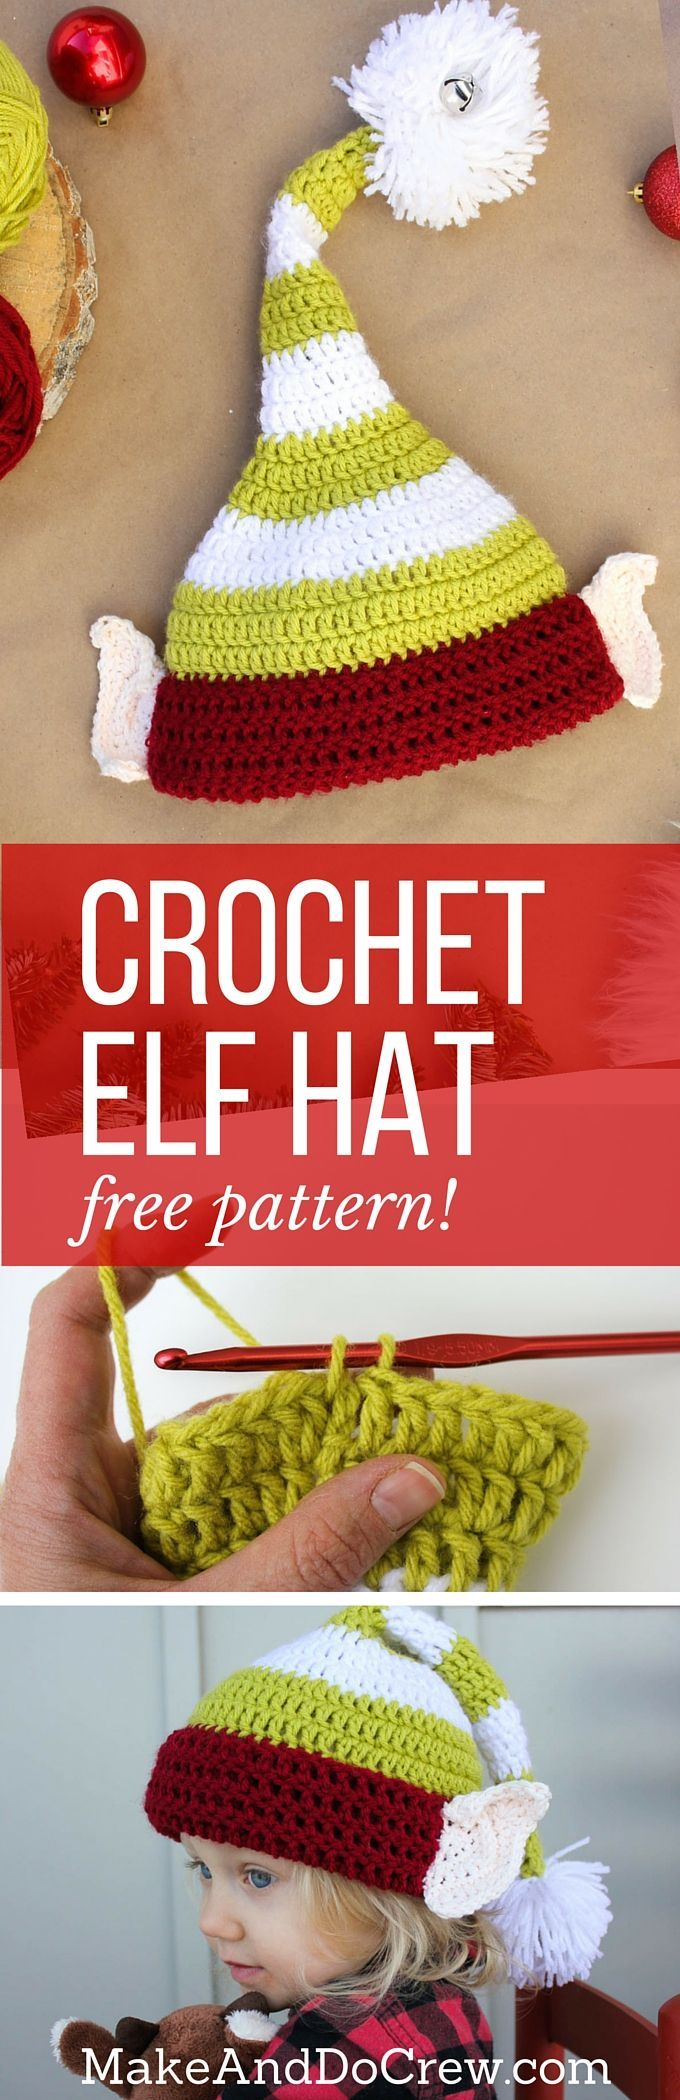 Free crochet elf hat pattern with ears! Make one for each member of the family. Perfect Christmas photo prop idea. Free pattern sizes include 0-3 months (newborn), 3-6 months (baby), 6-12 months, toddler/preschooler, child and adult.